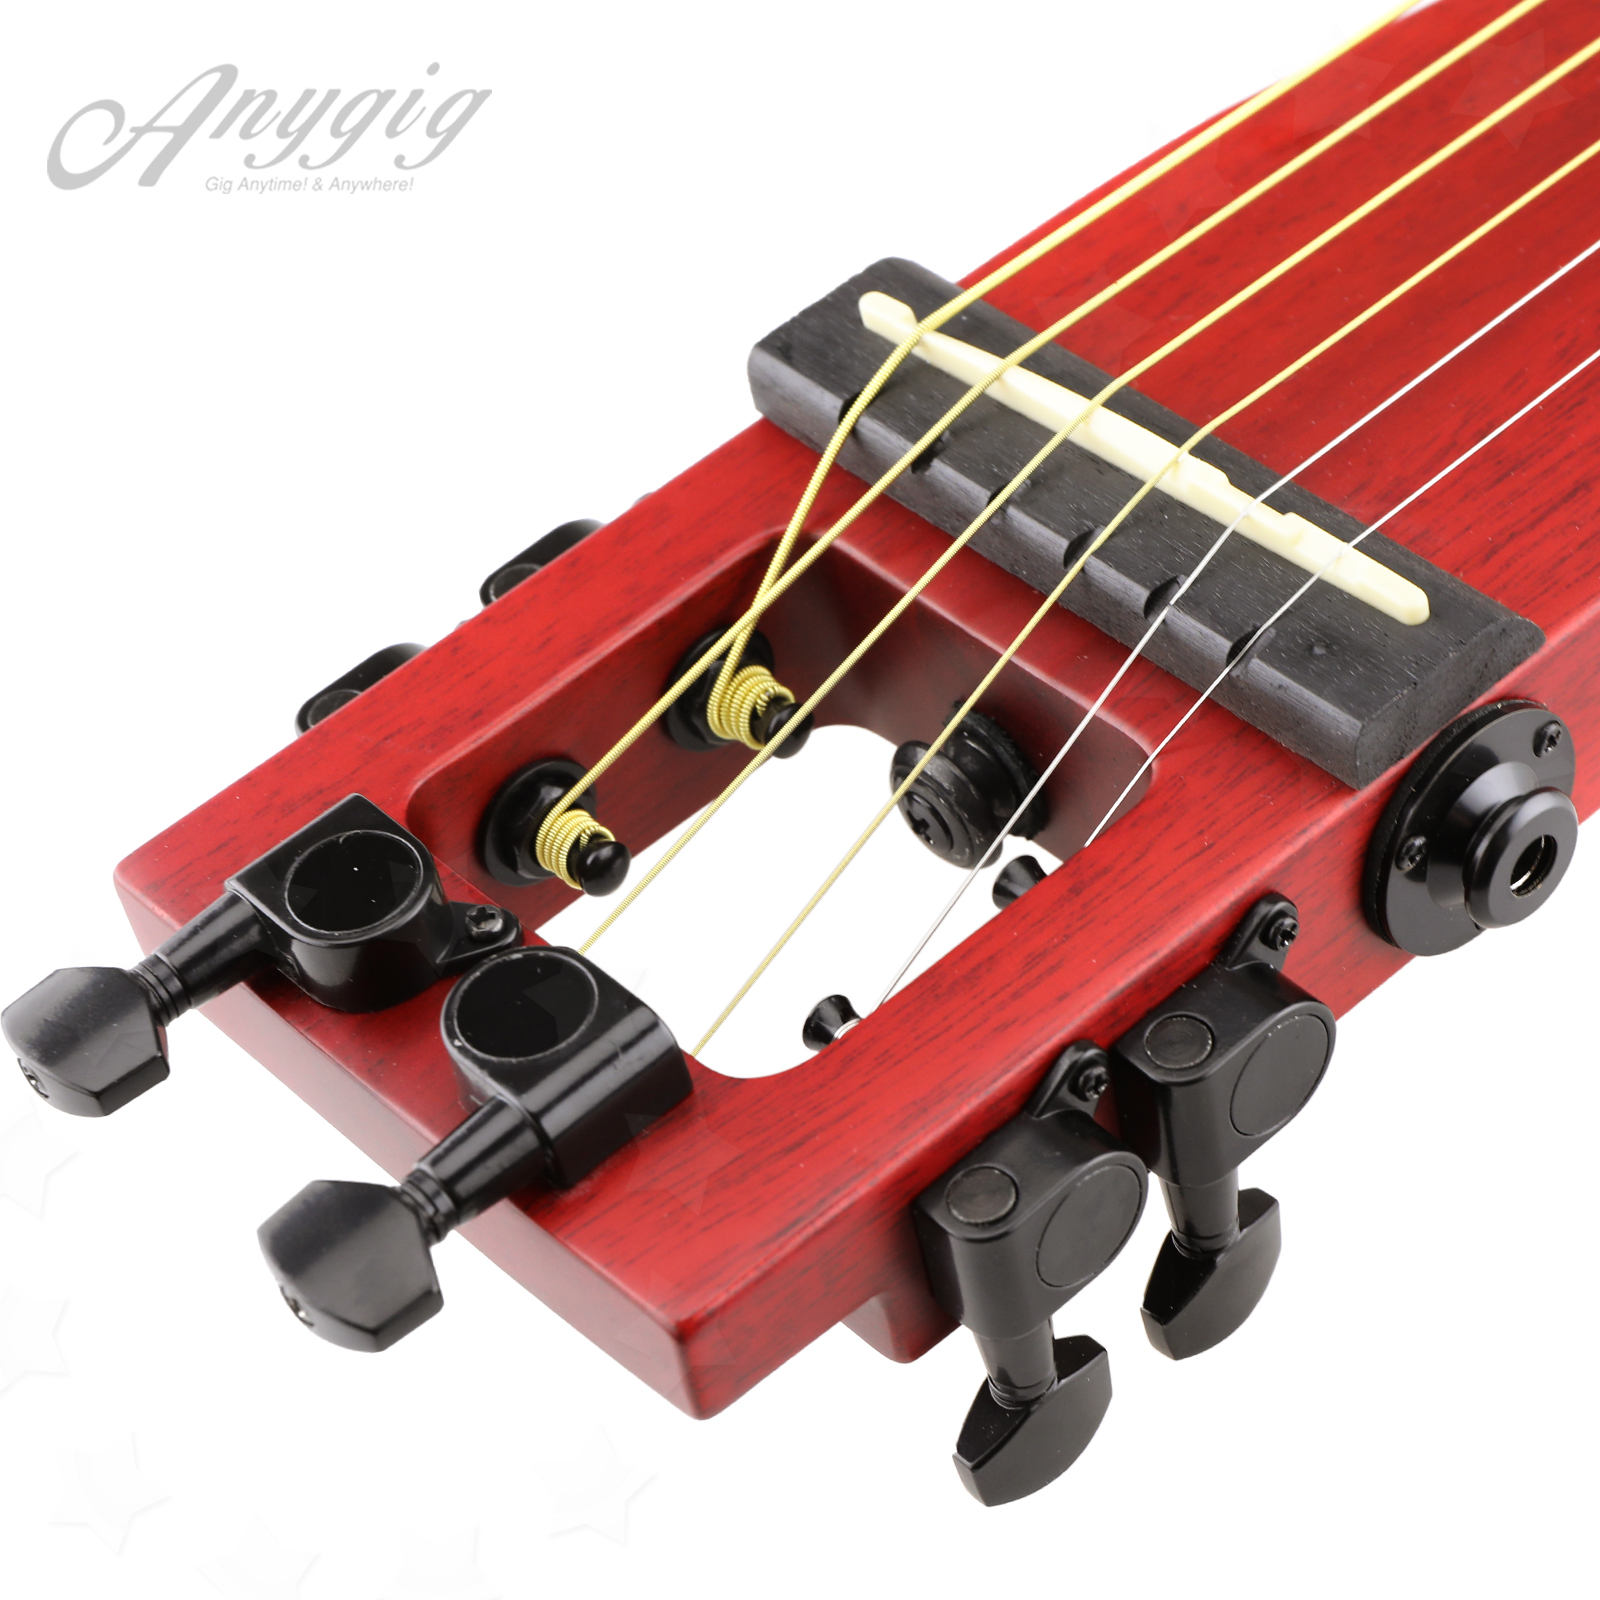 anygig ags 25 5 39 39 protable 6 steel strings acoustic right handed guitar cherry ebay. Black Bedroom Furniture Sets. Home Design Ideas